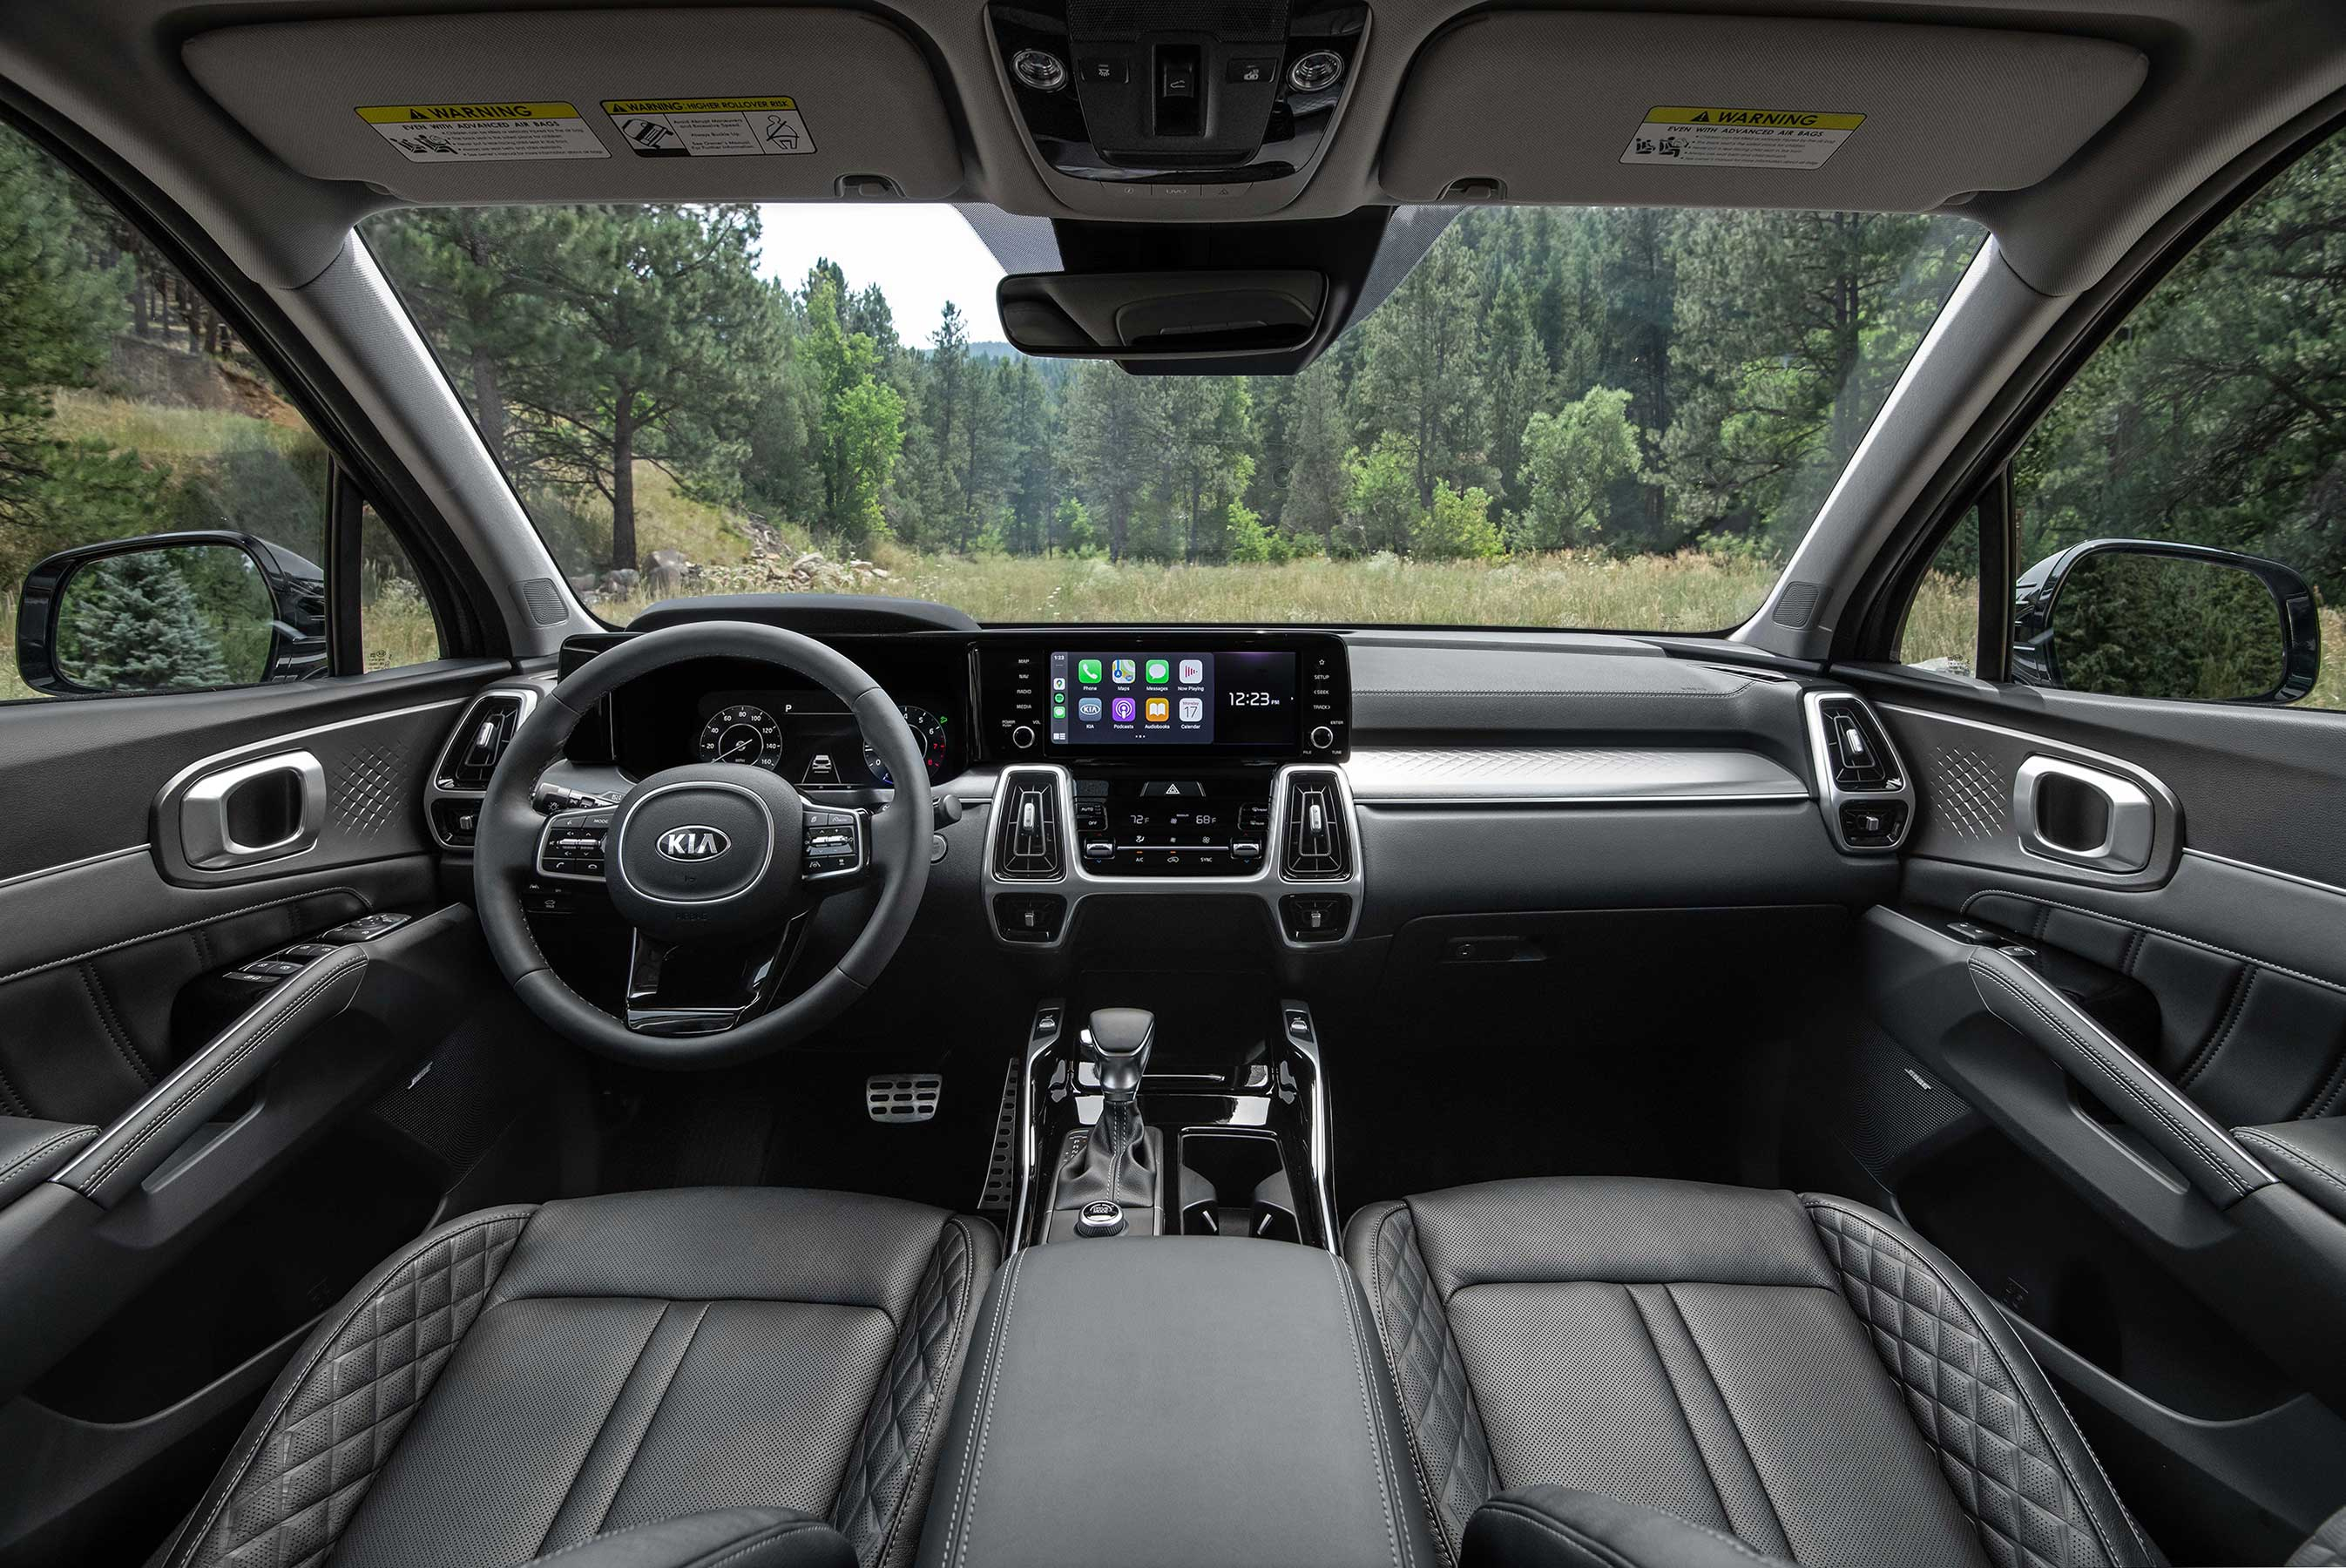 All-new 2021 Kia Sorento delivers best-in-class front/rear legroom and overall interior passenger volume.